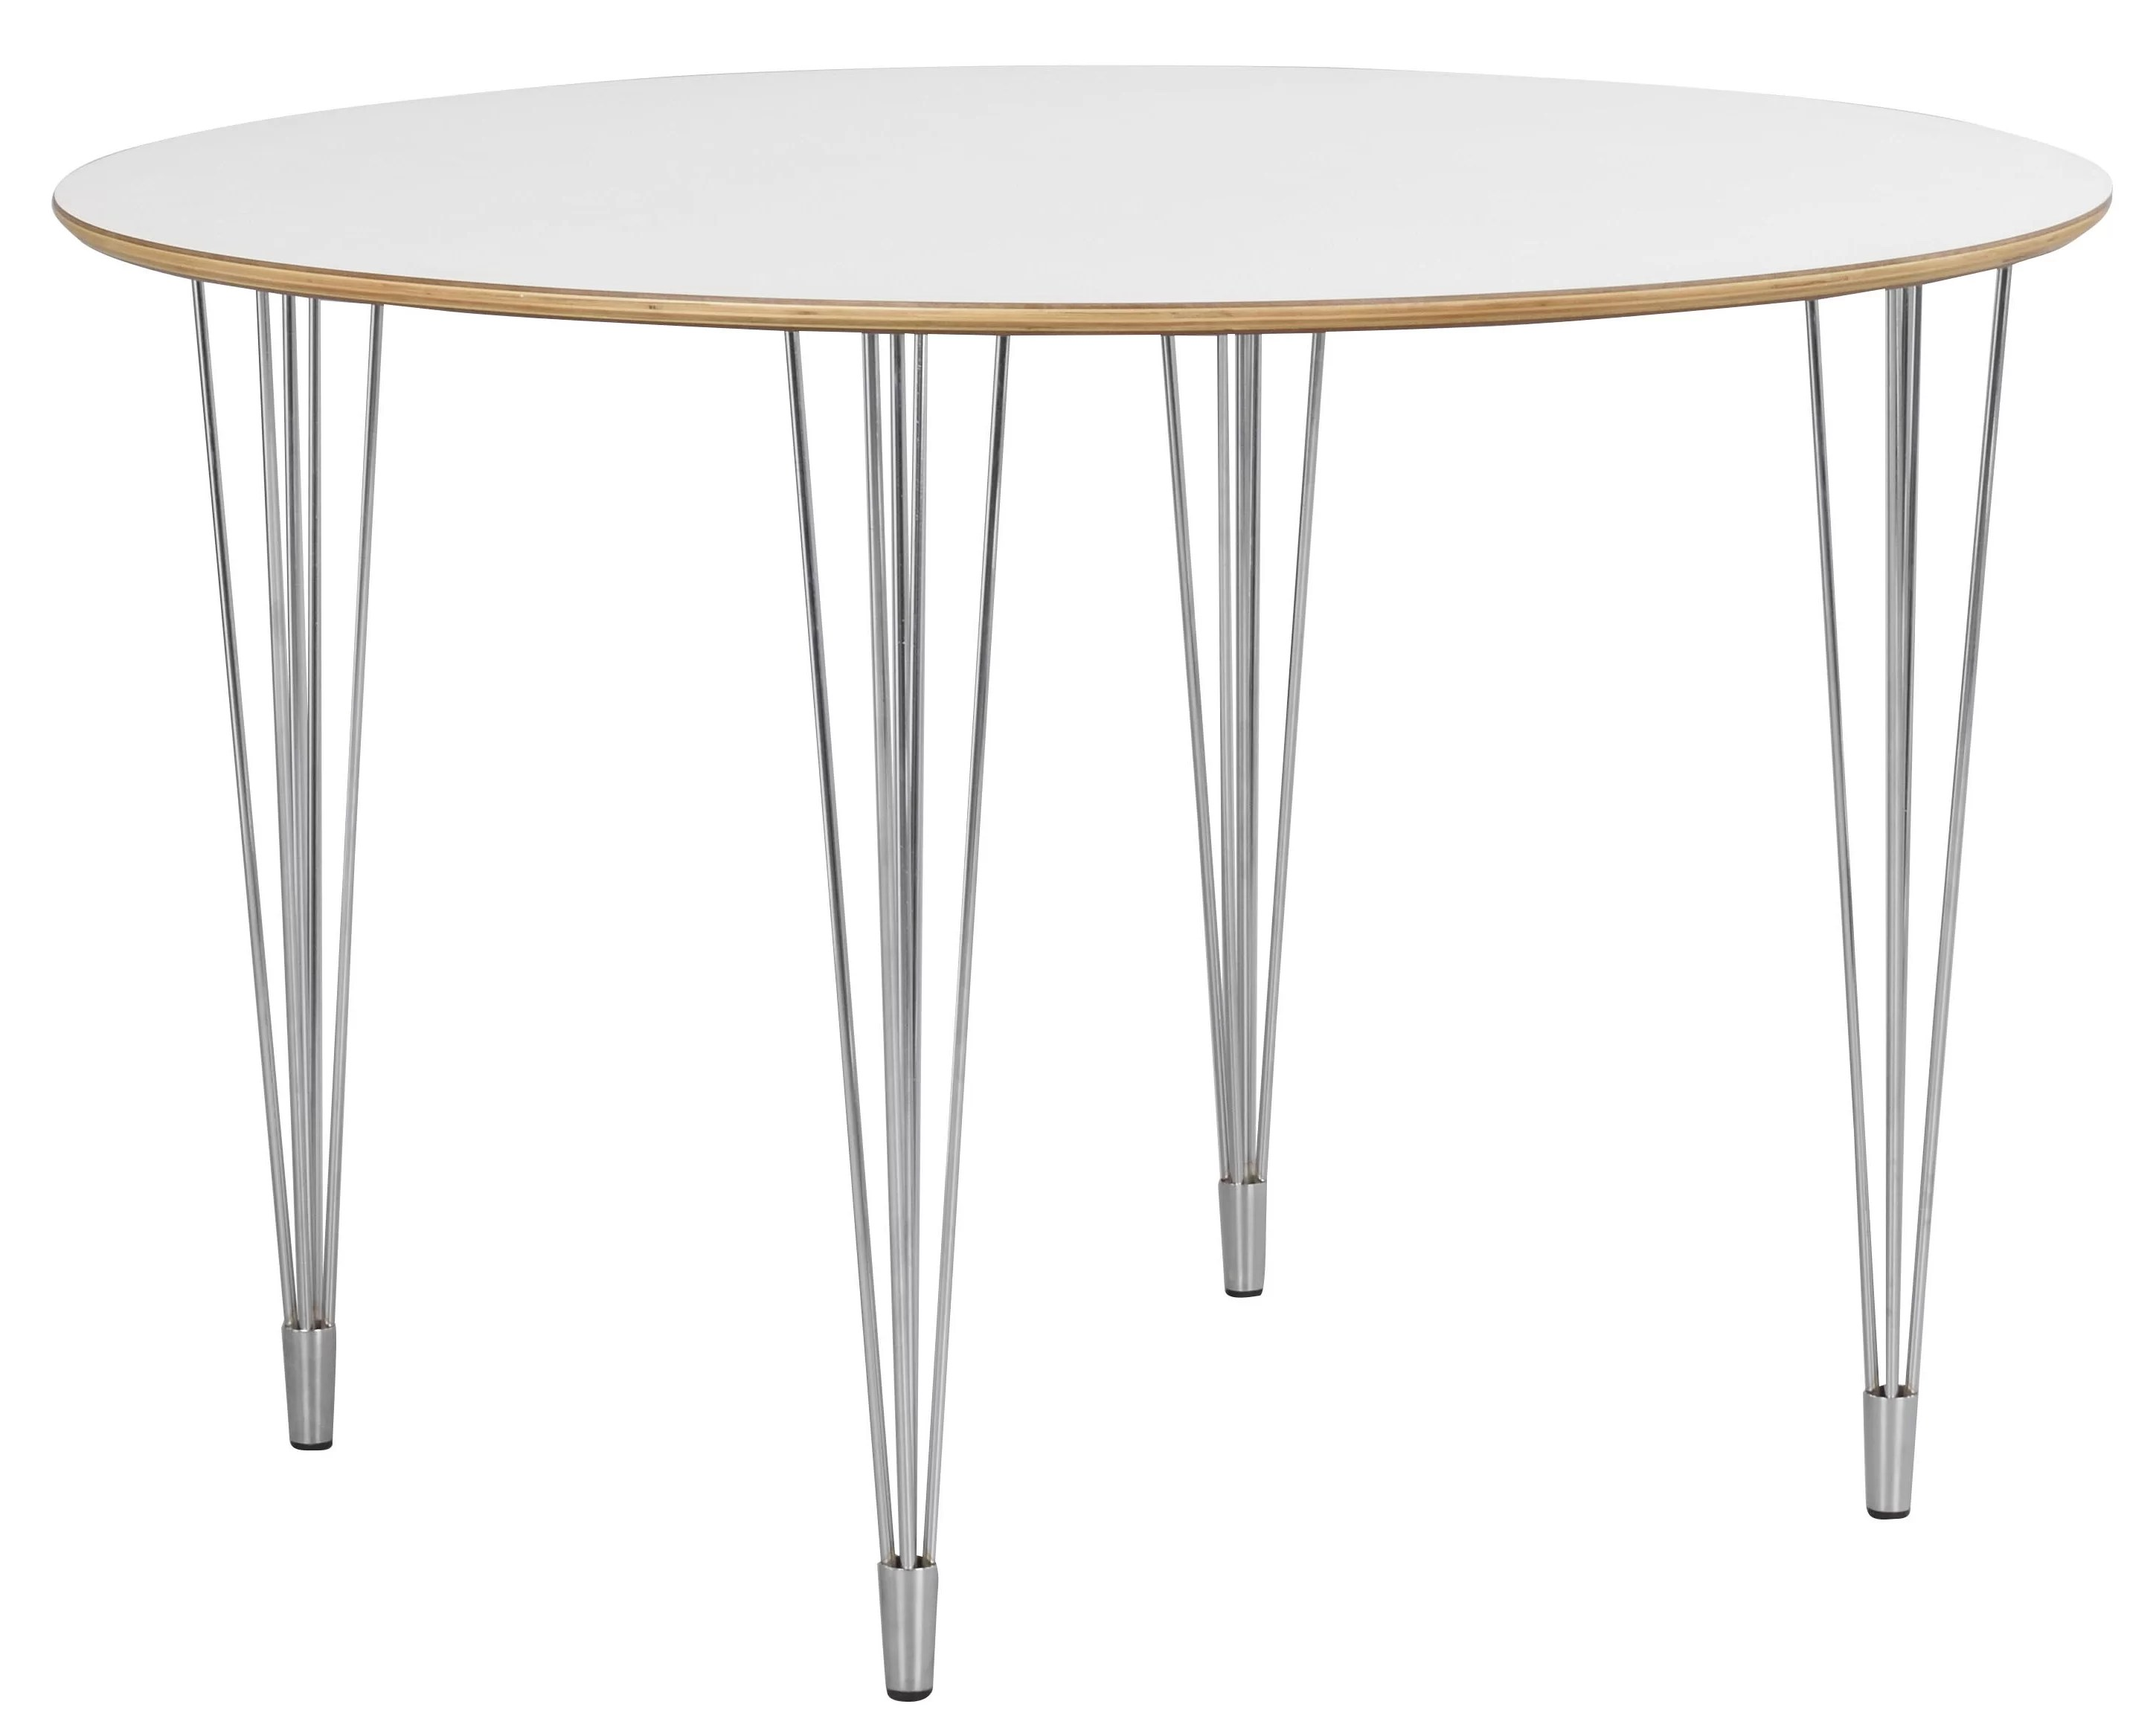 Hairpin Legs Couchtisch Fusion Round Hairpin Leg Dining Table